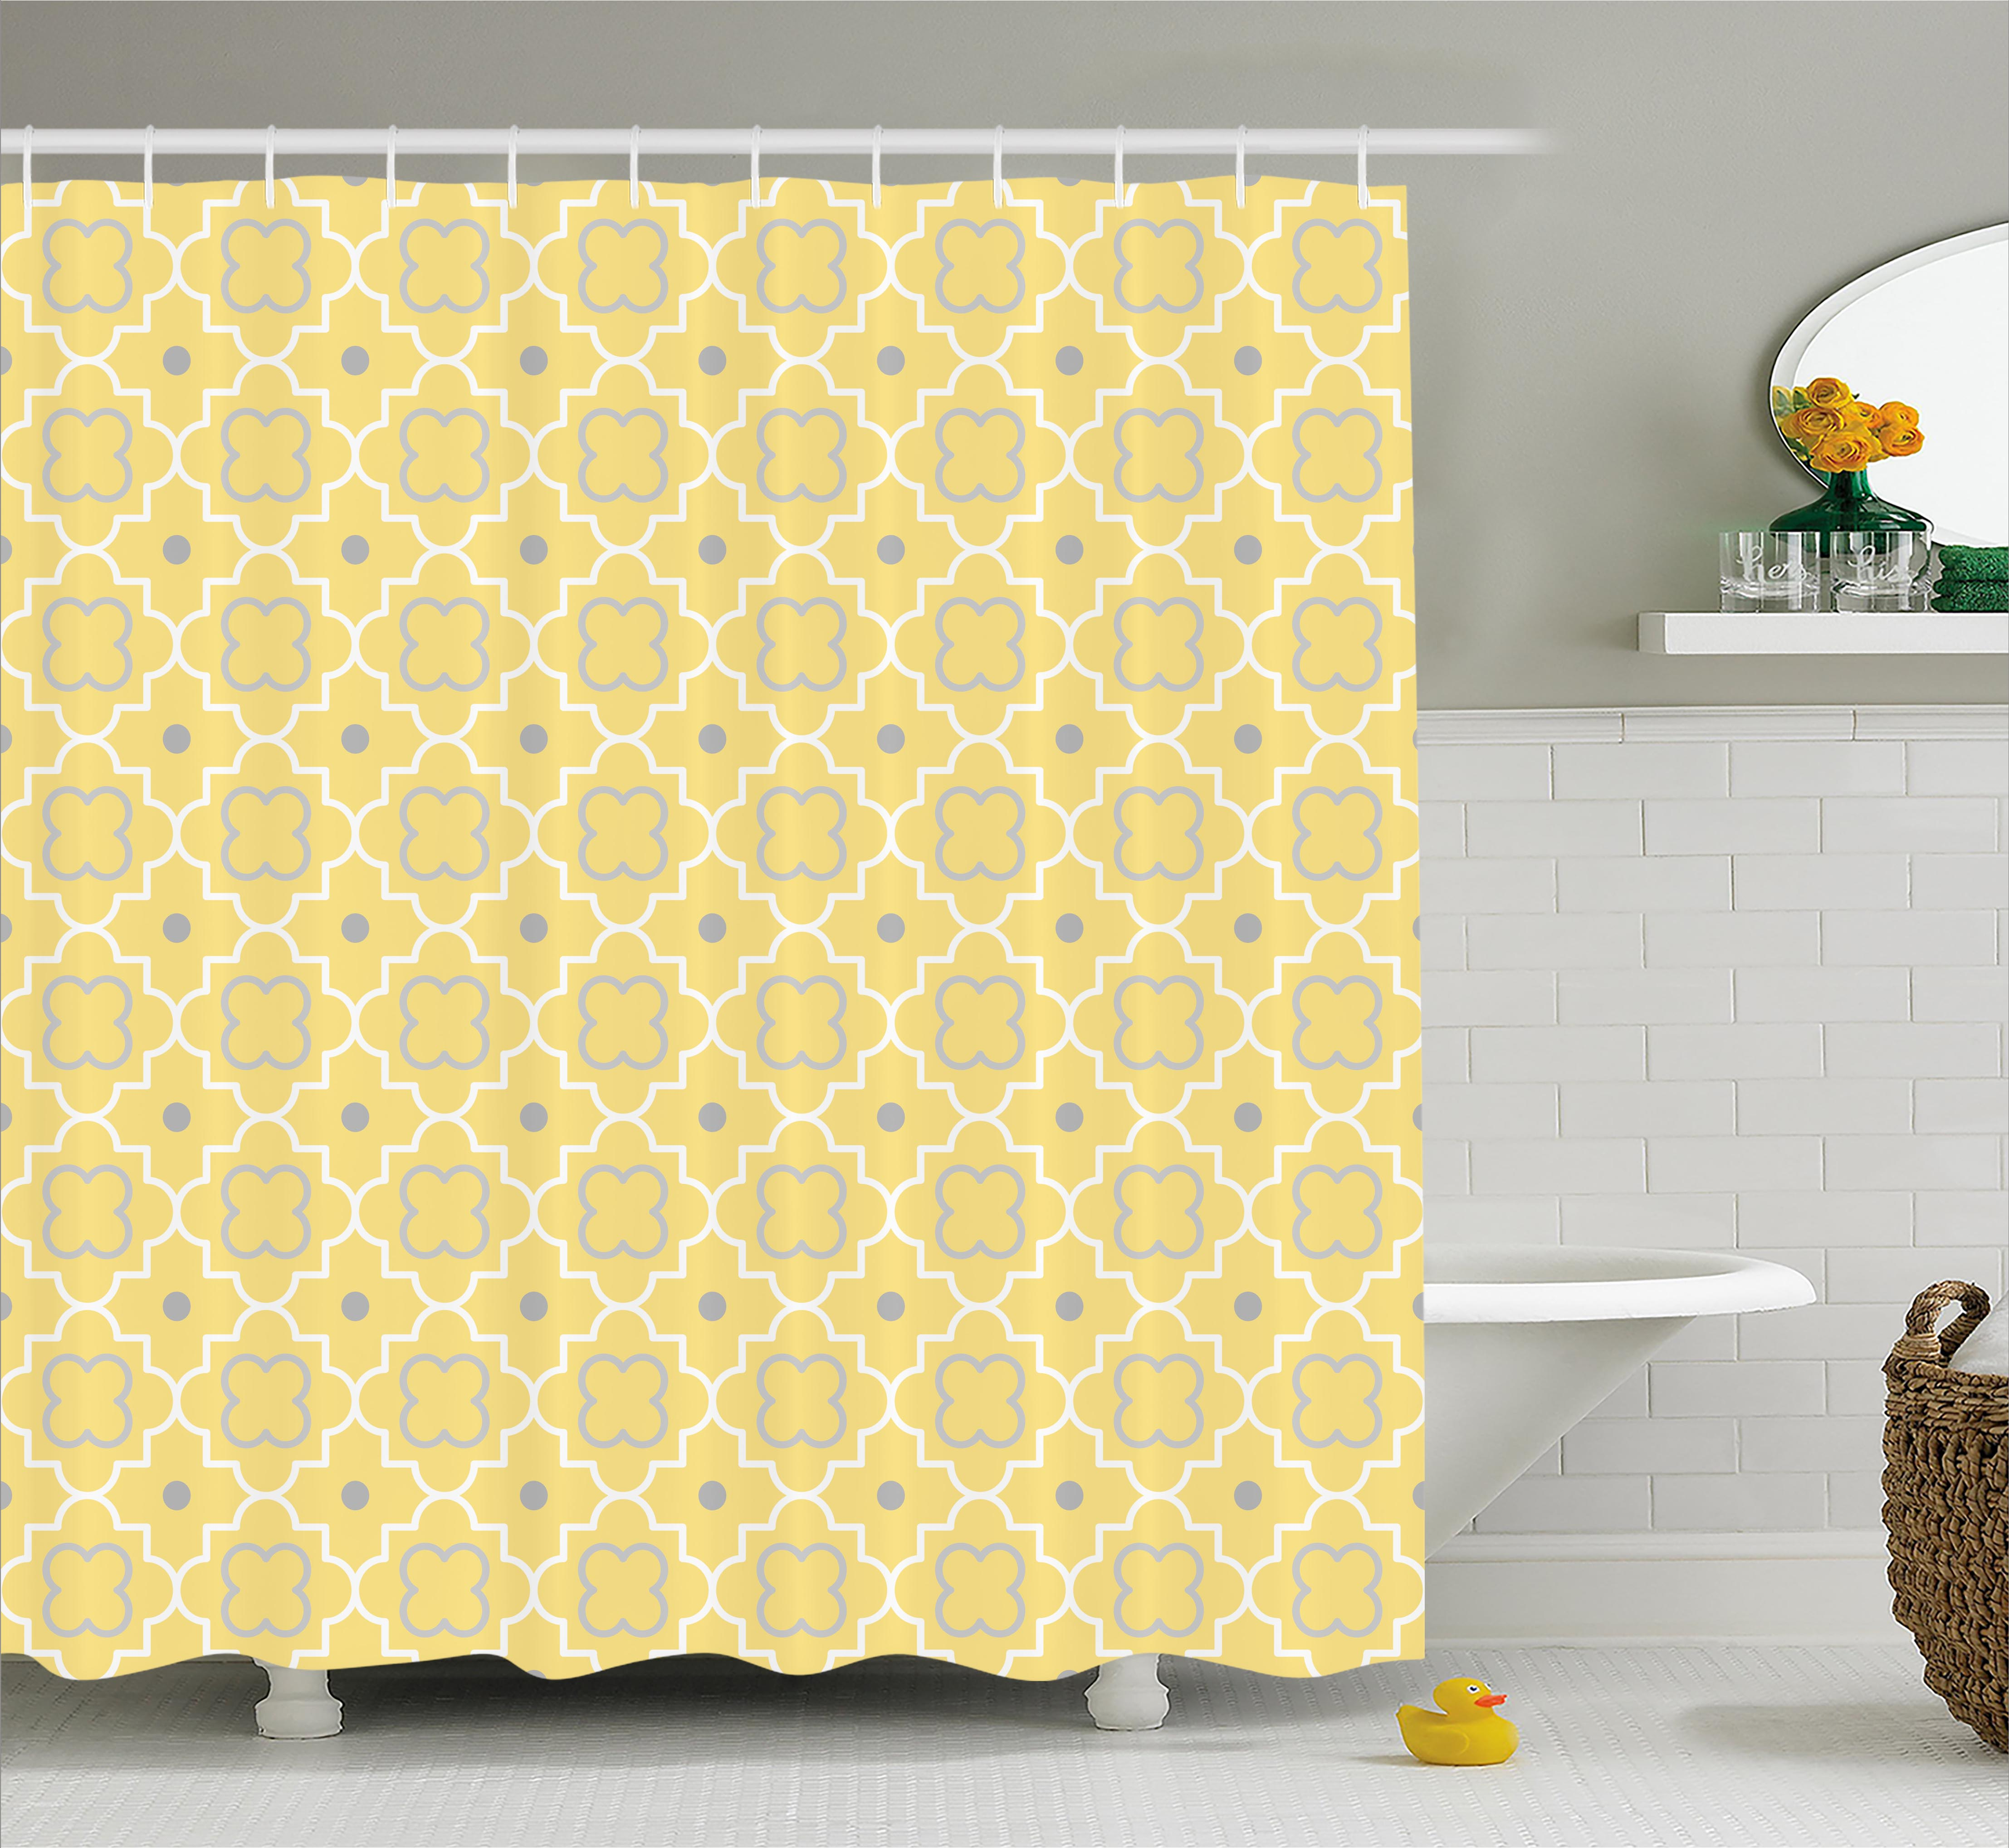 Quatrefoil Shower Curtain, Traditional Abstract Pattern with Moroccan Arabesque Middle Eastern Effects, Fabric Bathroom Set with Hooks, 69W X 70L Inches, Light Yellow, by Ambesonne